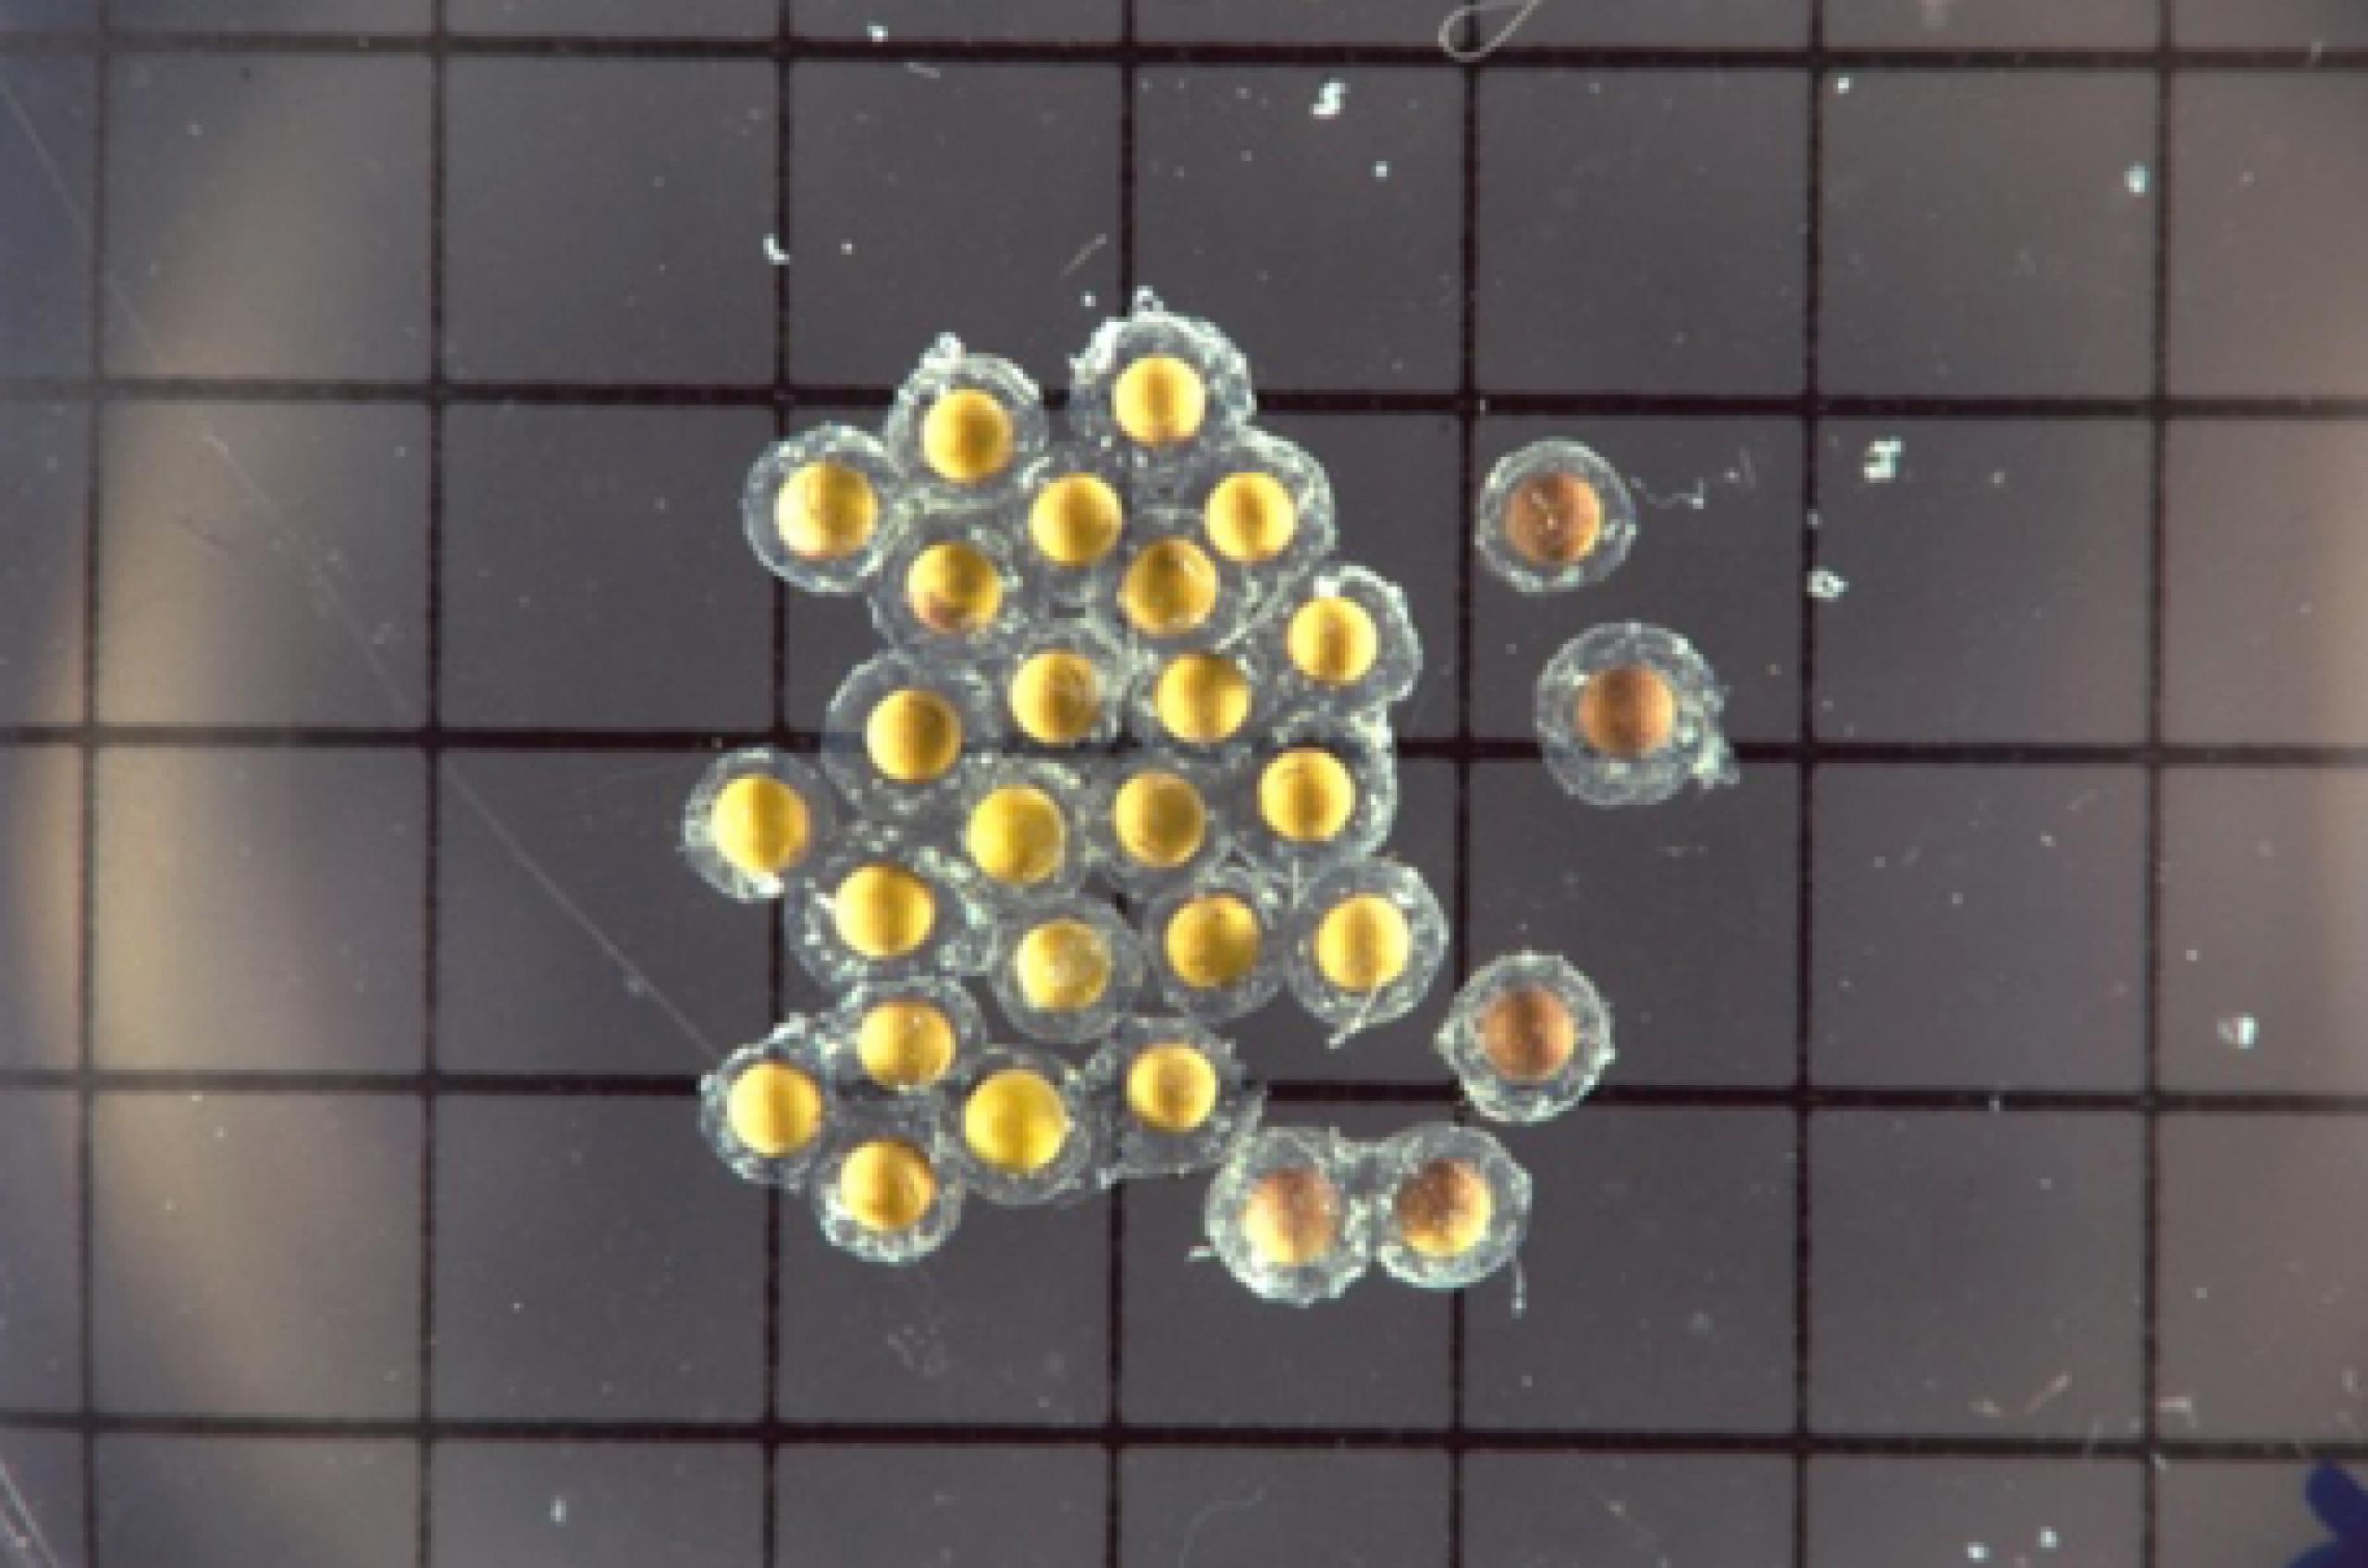 Cluster of yellow reproductive cells floating on a gray grid with black lines.